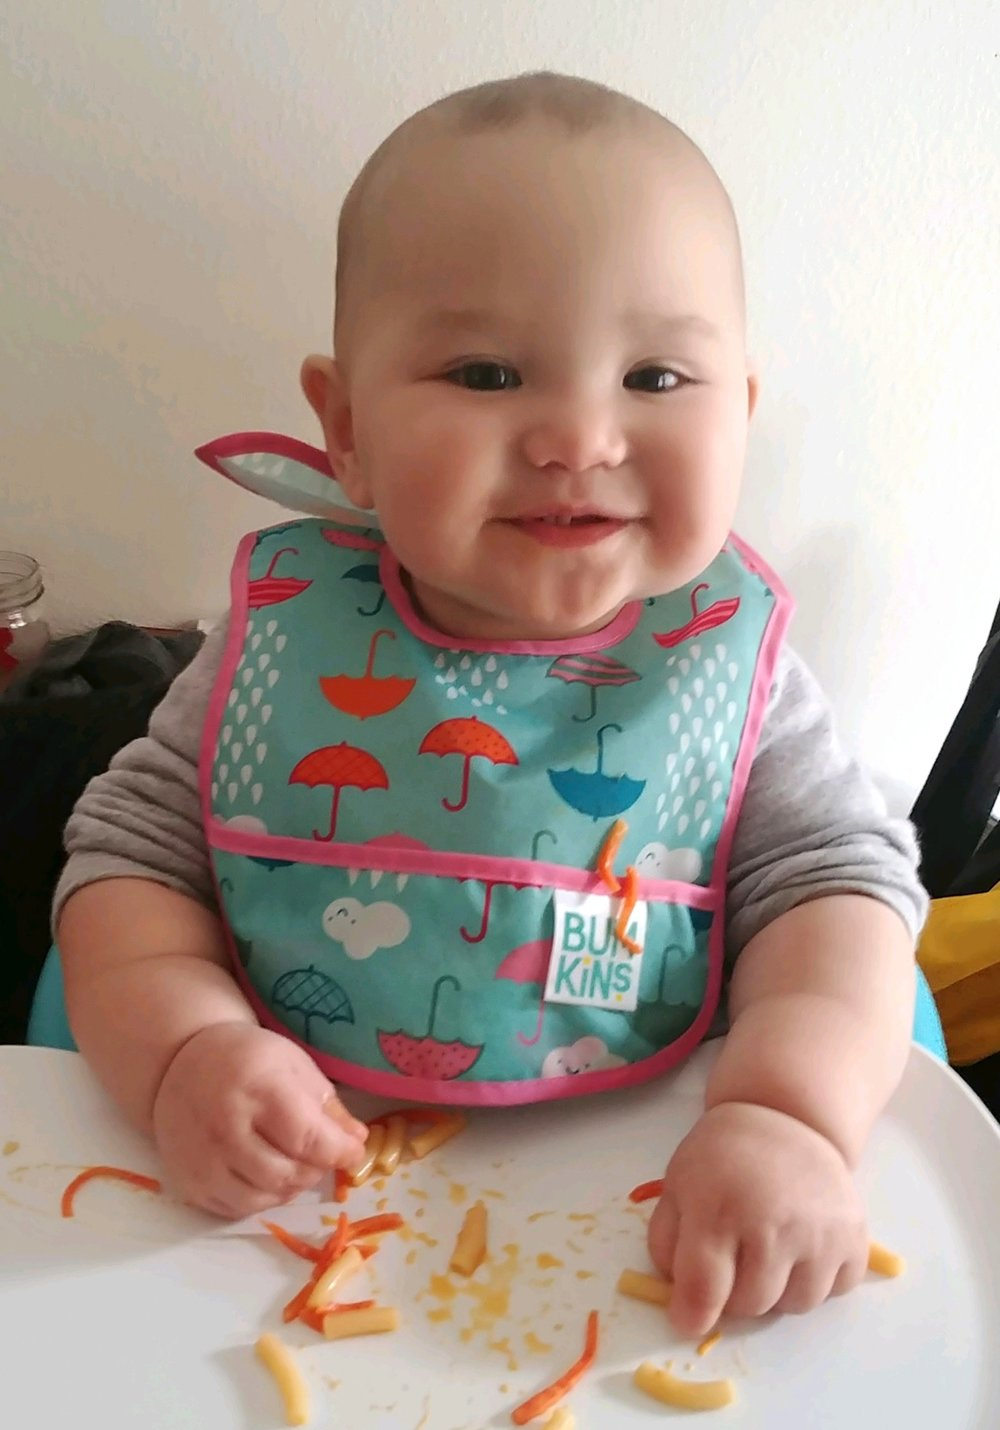 Auden loves her Yin Yang Carrots — with just 2 teeth!